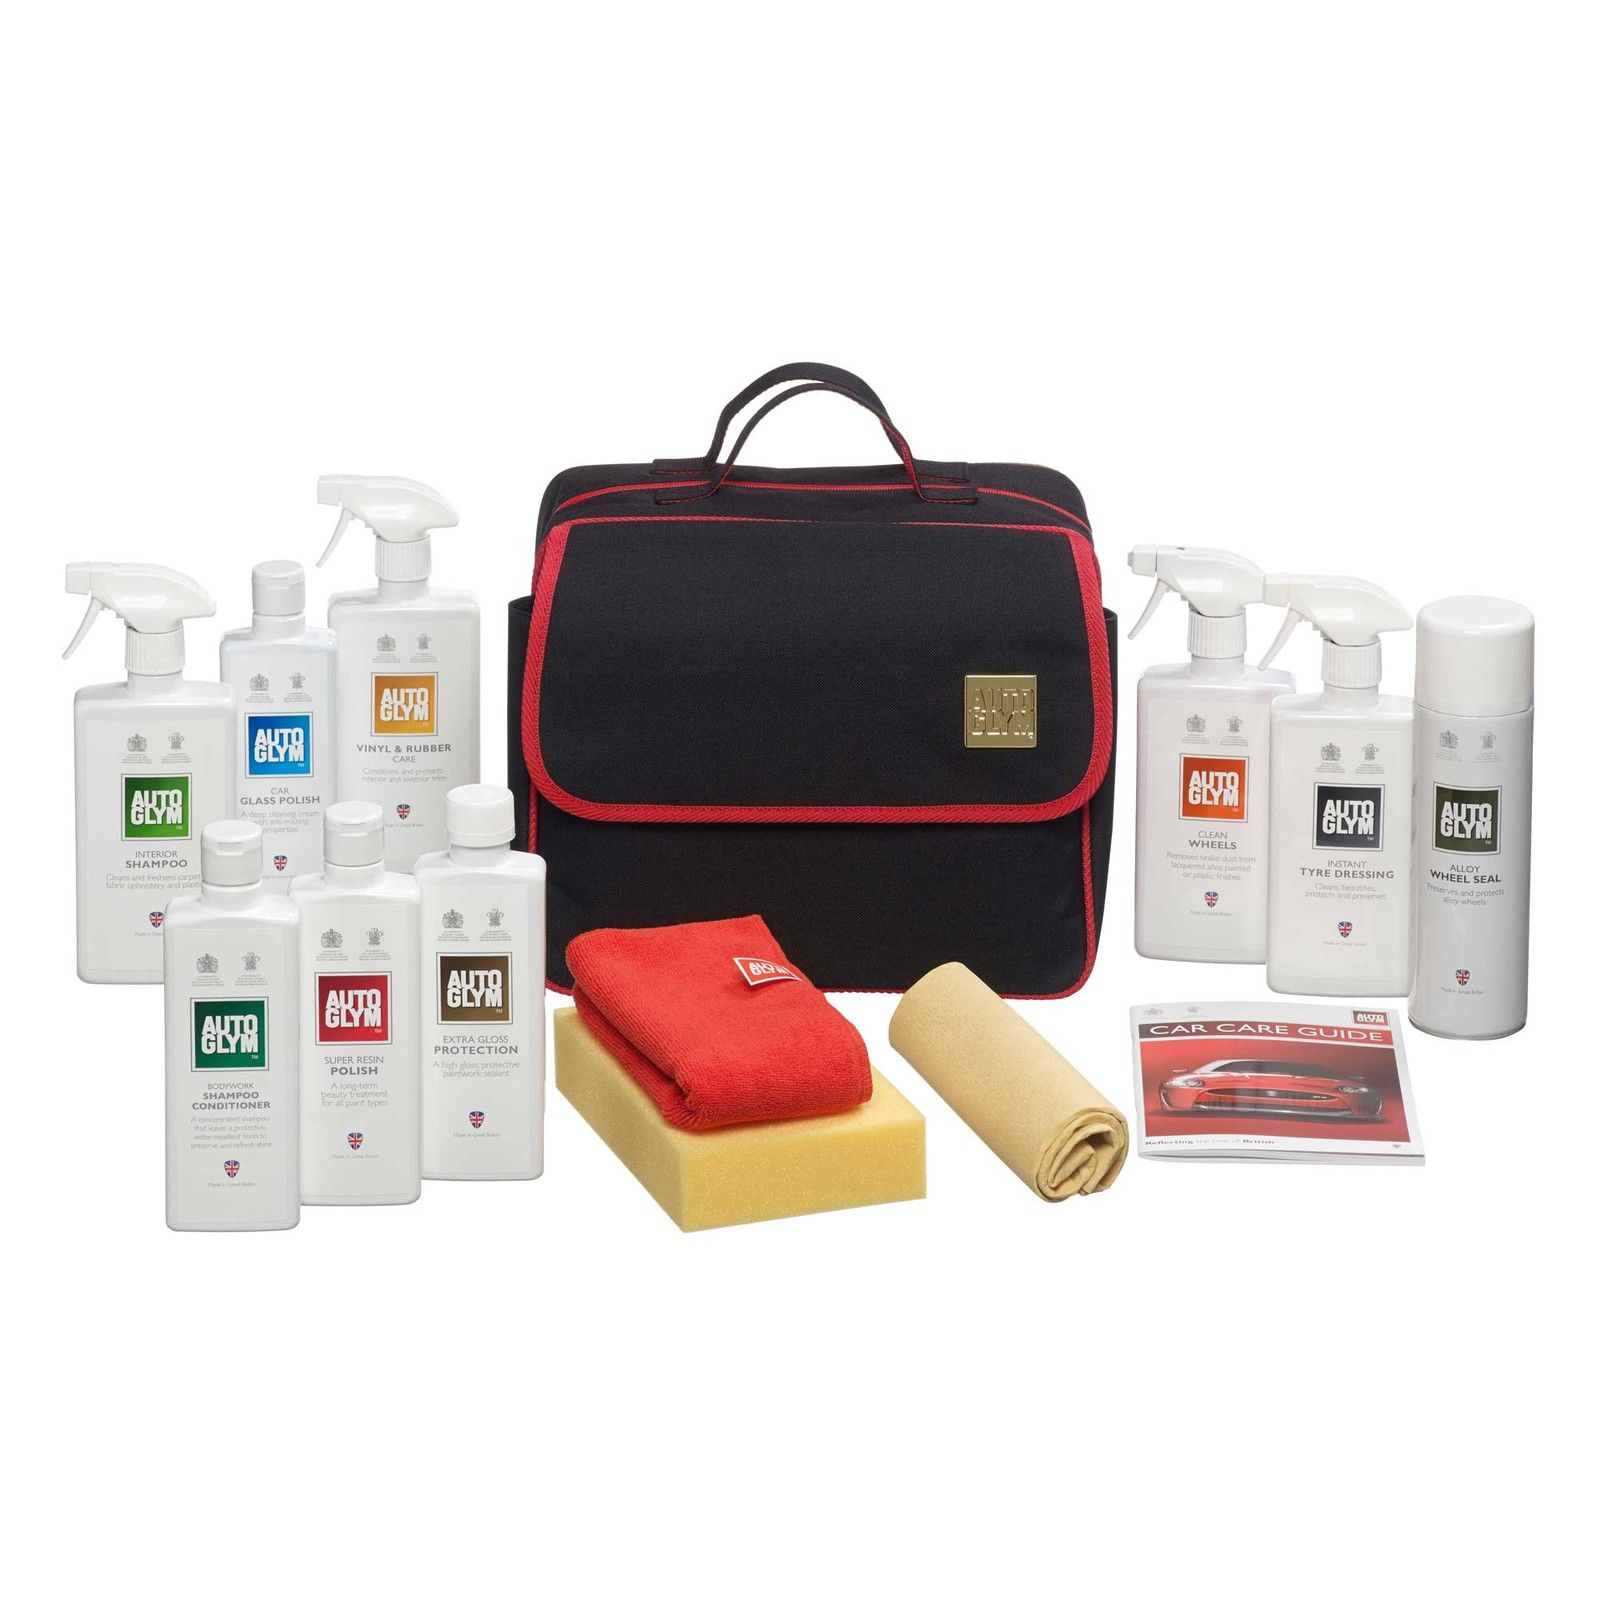 autoglym perfect bodywork wheels interior collection kit car care cleaning set. Black Bedroom Furniture Sets. Home Design Ideas